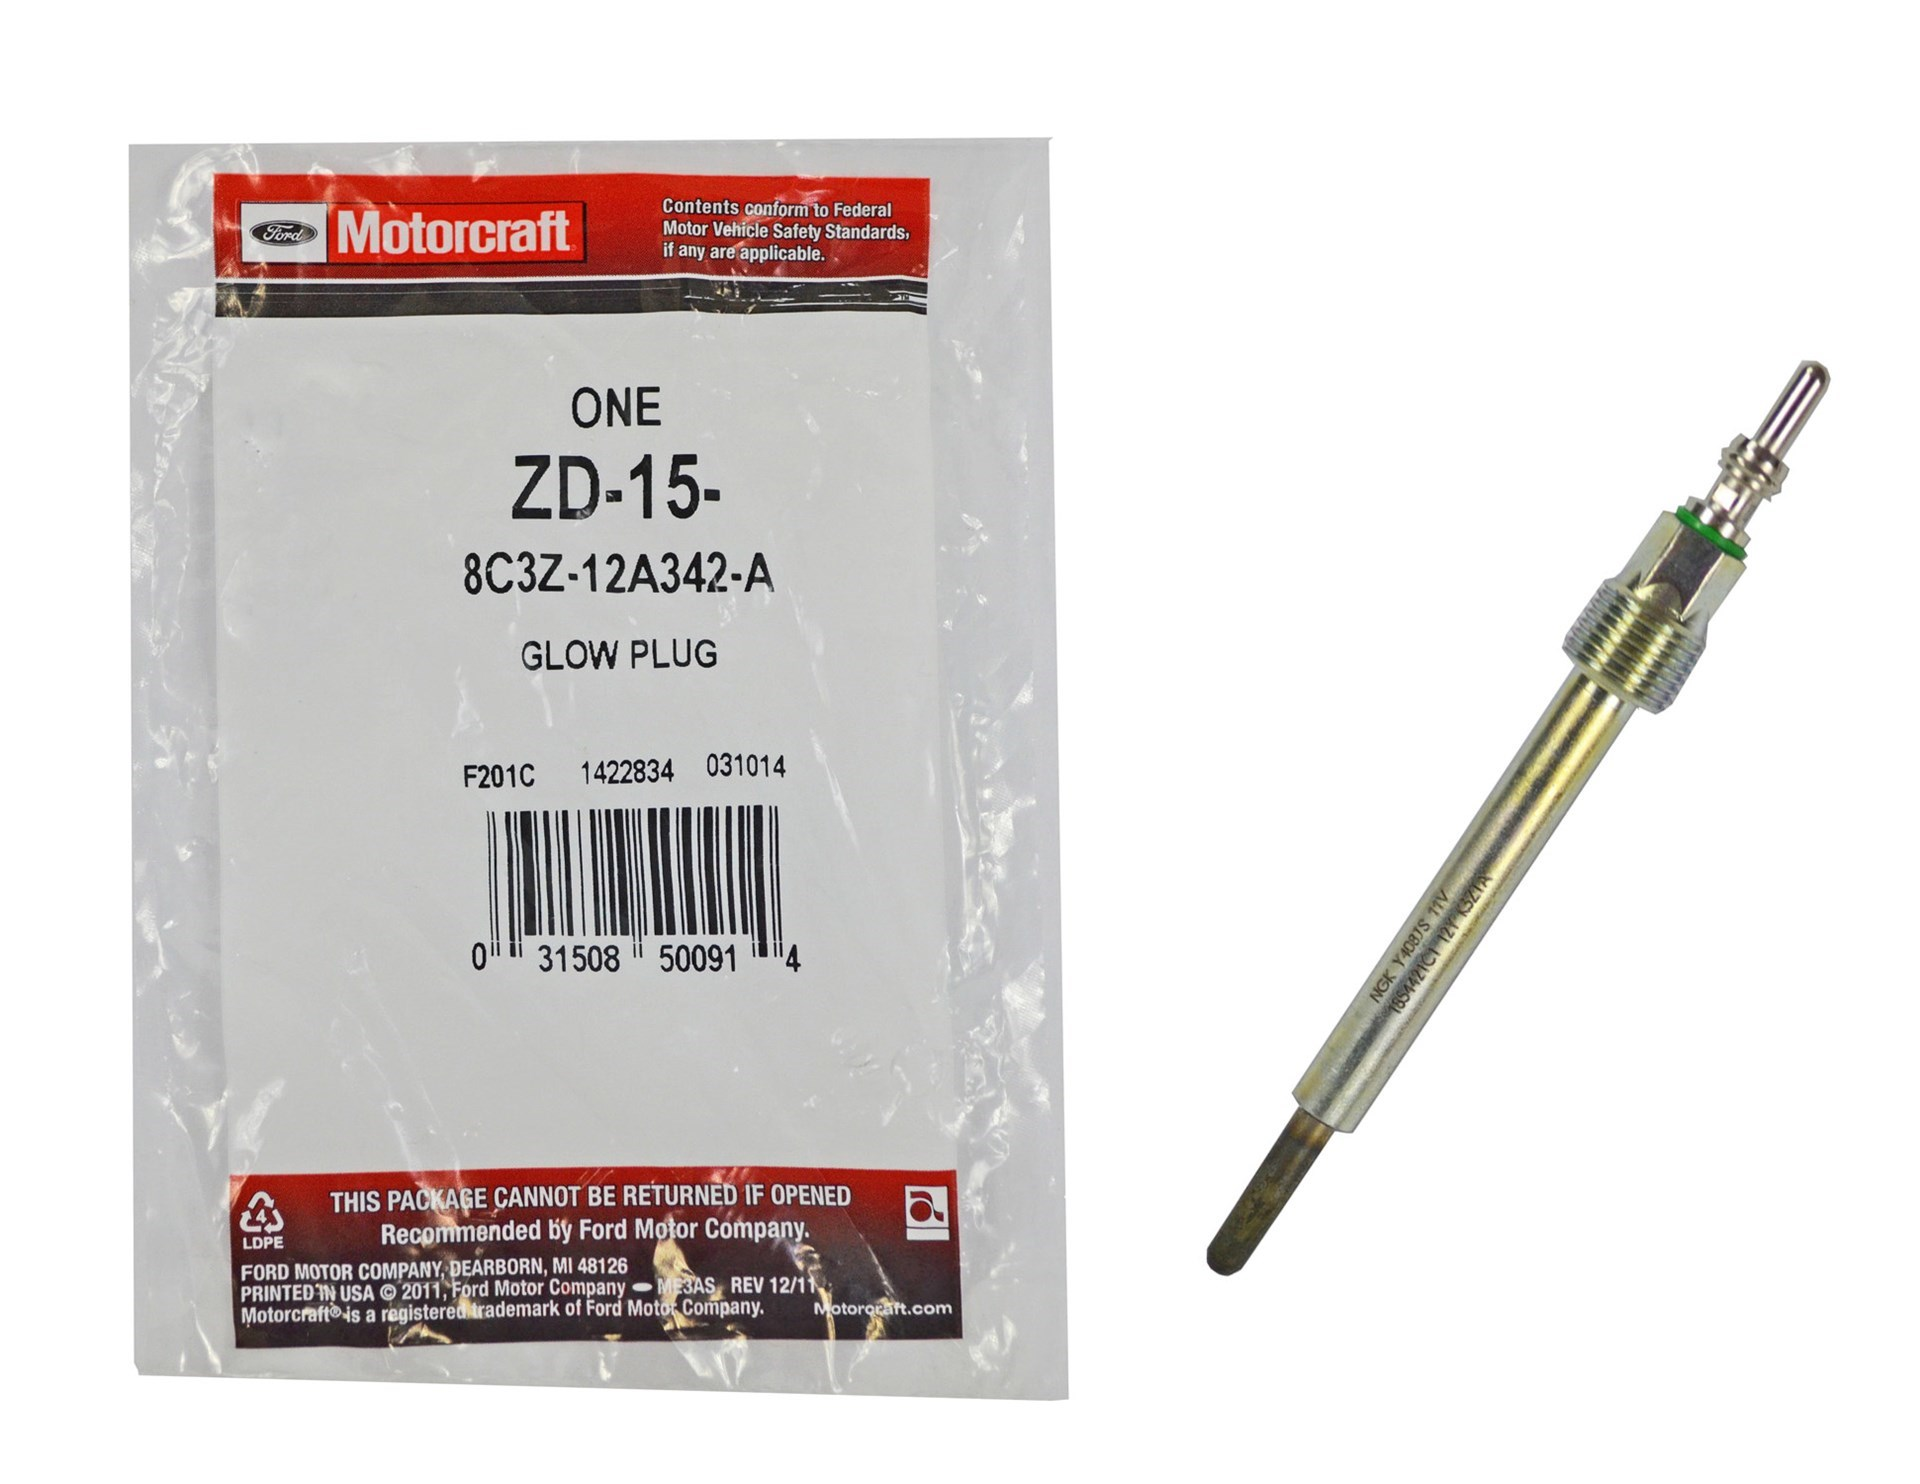 ZD-15 - OEM Motorcraft Glow Plug for 2008-2010 Ford Powerstroke 6.4L Diesel trucks